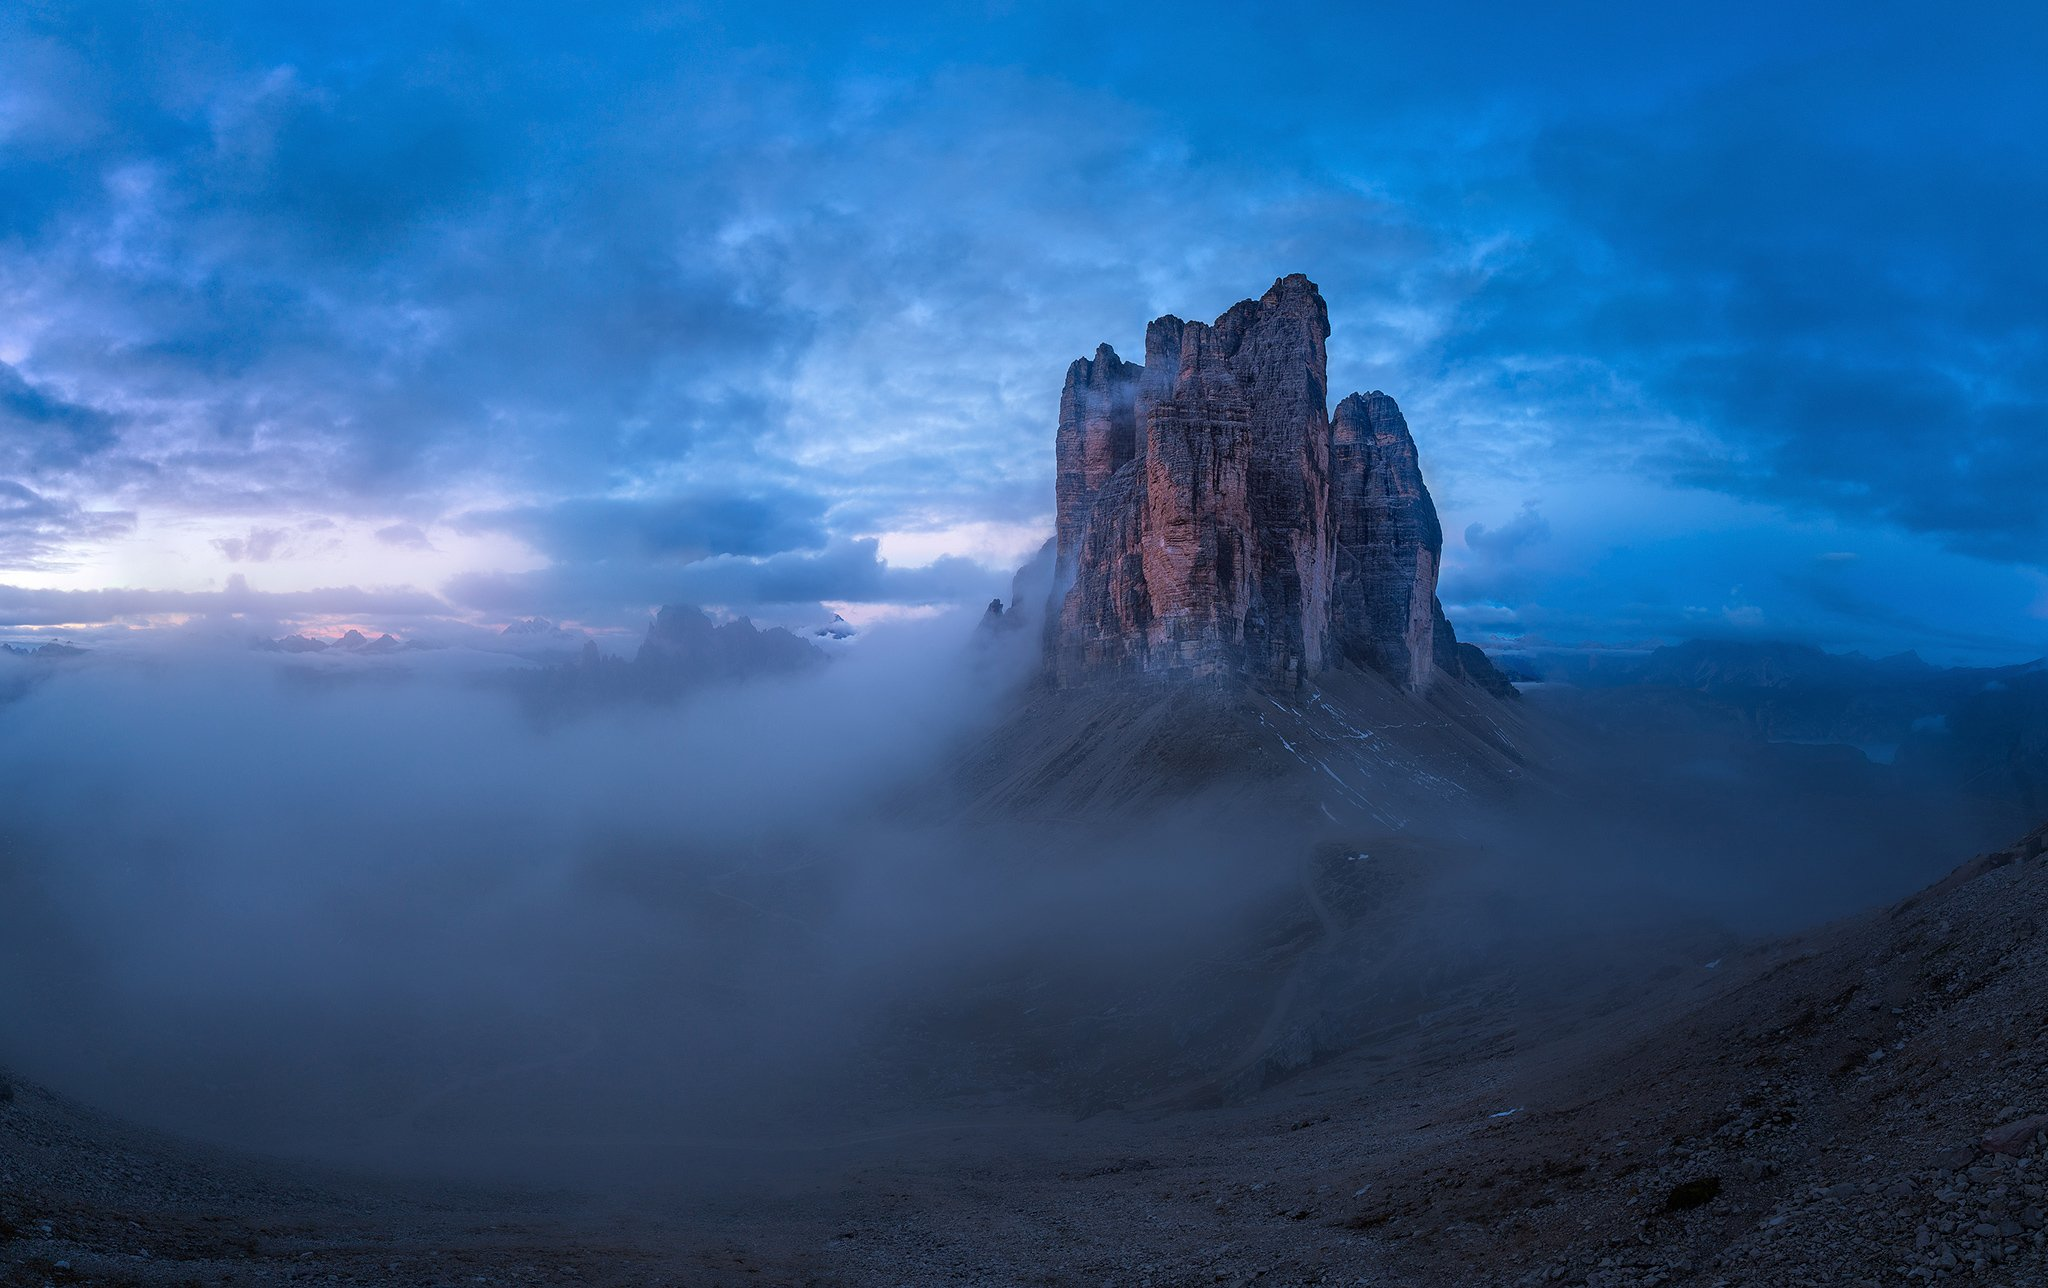 tre cime, unesco, dolomites, alps,morning, blue, rock, mountain, italy,, Misiak Adrian